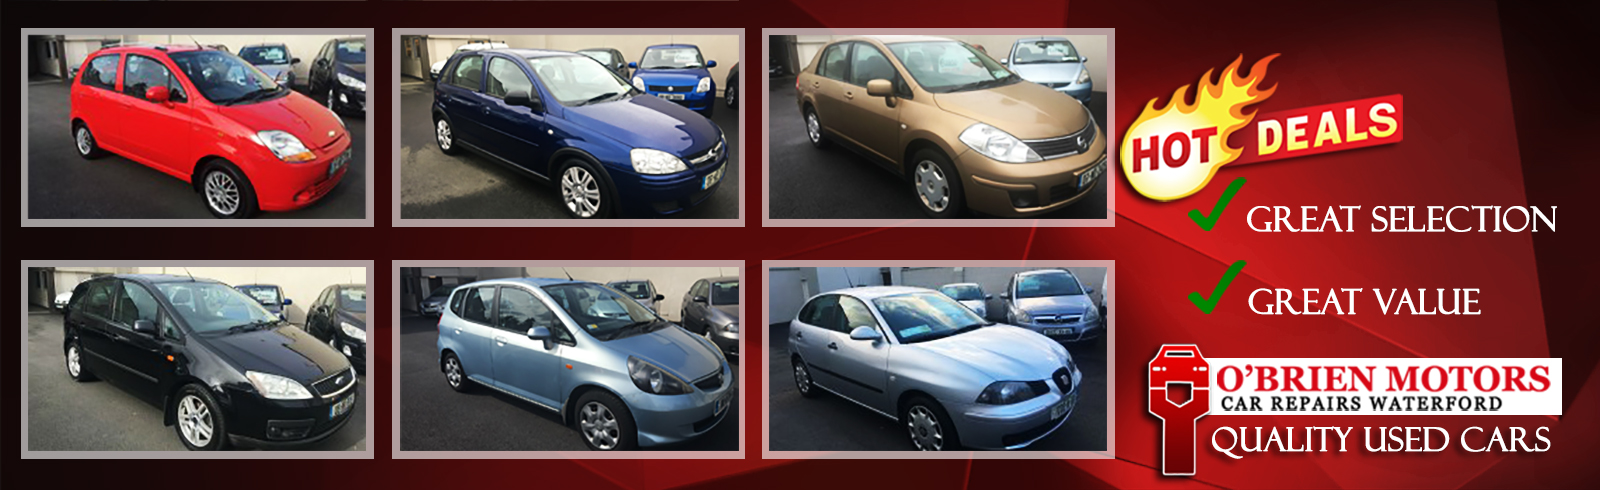 Used-Cars-for-Sale-Waterford